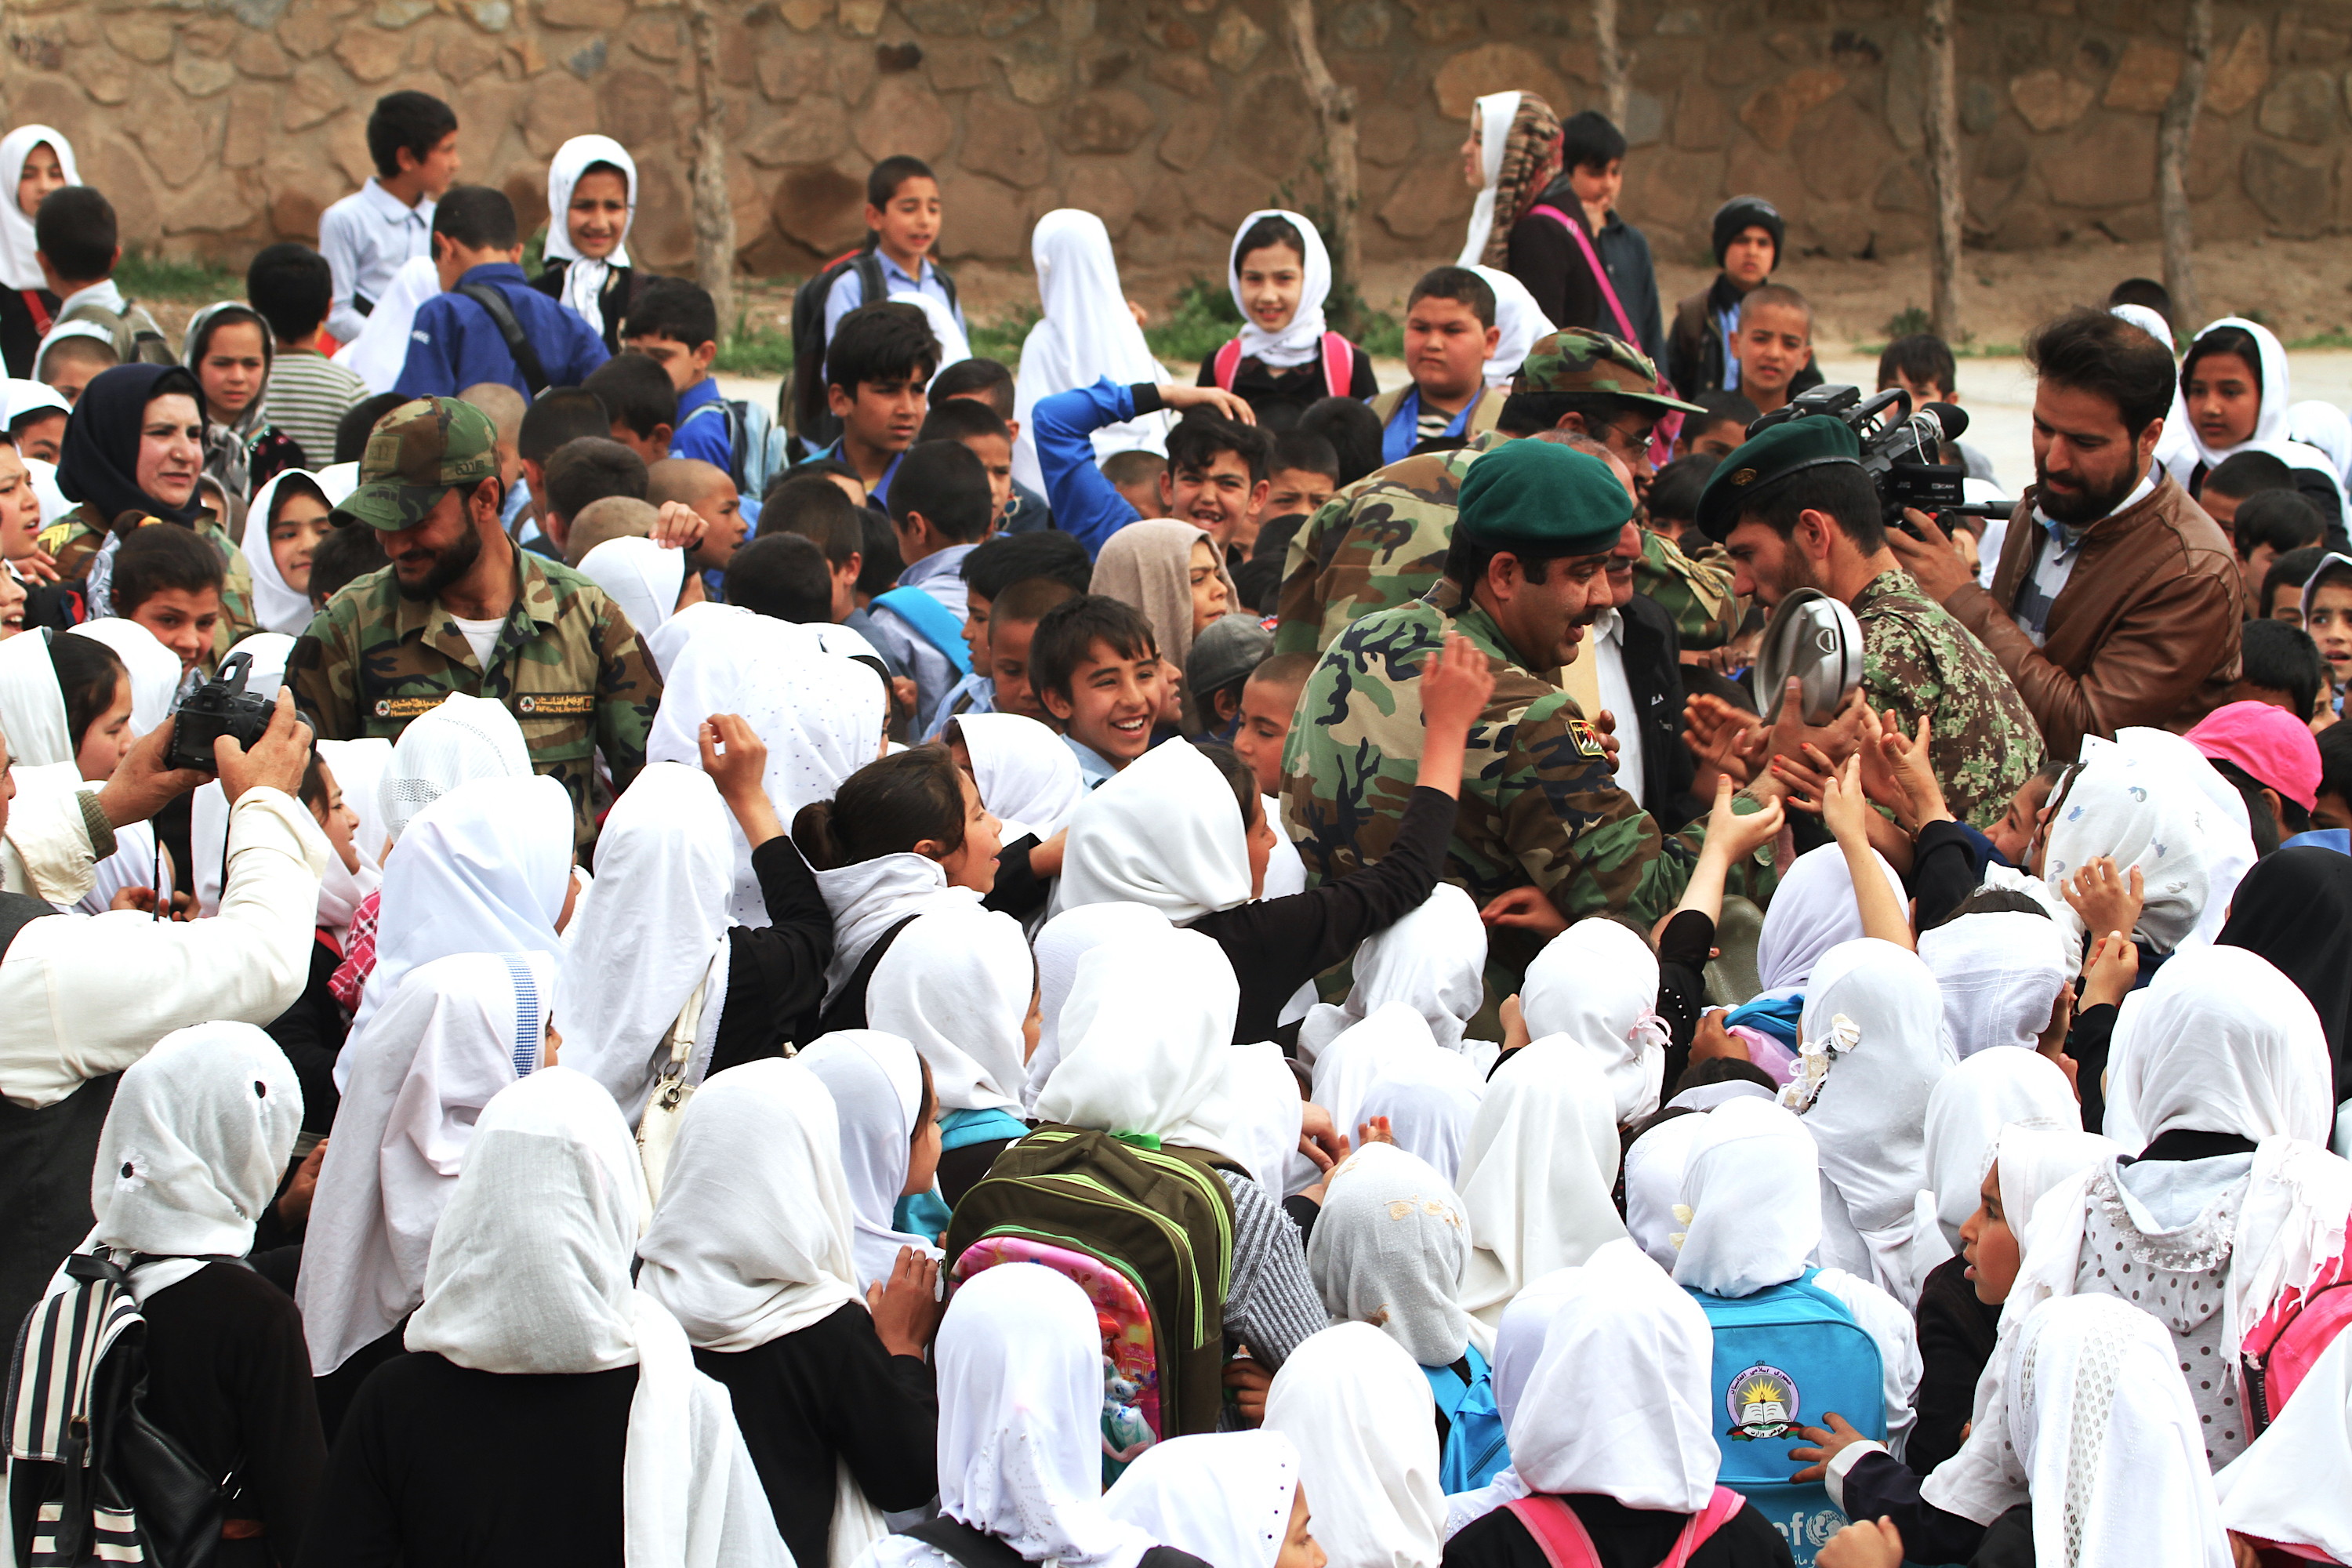 Afghan army provides students in Herat with much-needed hope, supplies